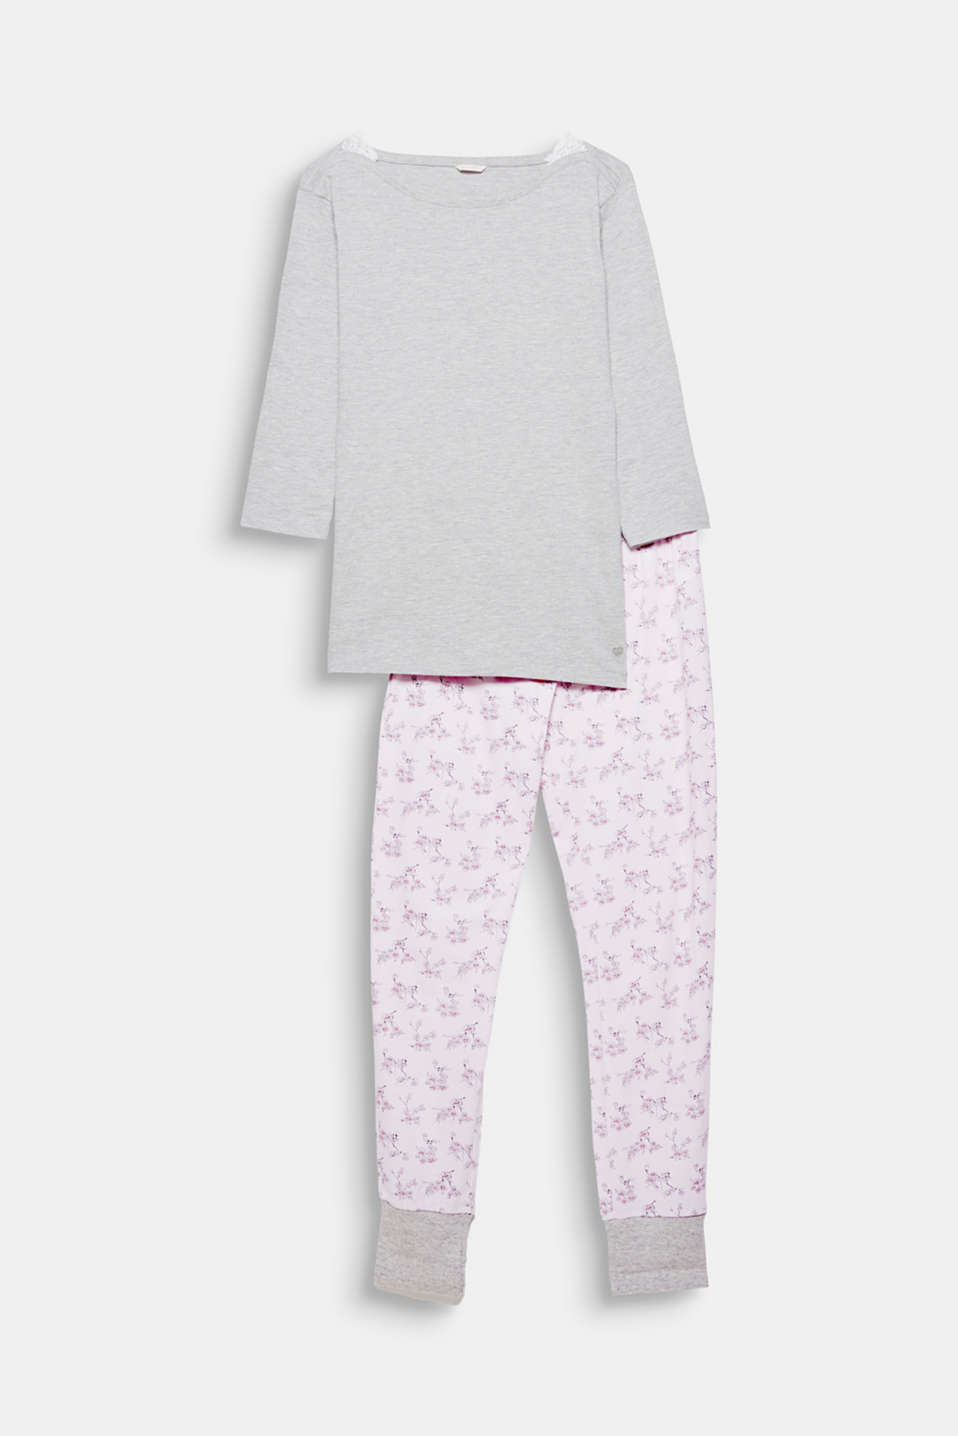 The design of these soft jersey pyjamas consisting of a melange tee and printed bottoms is both casual and pretty!